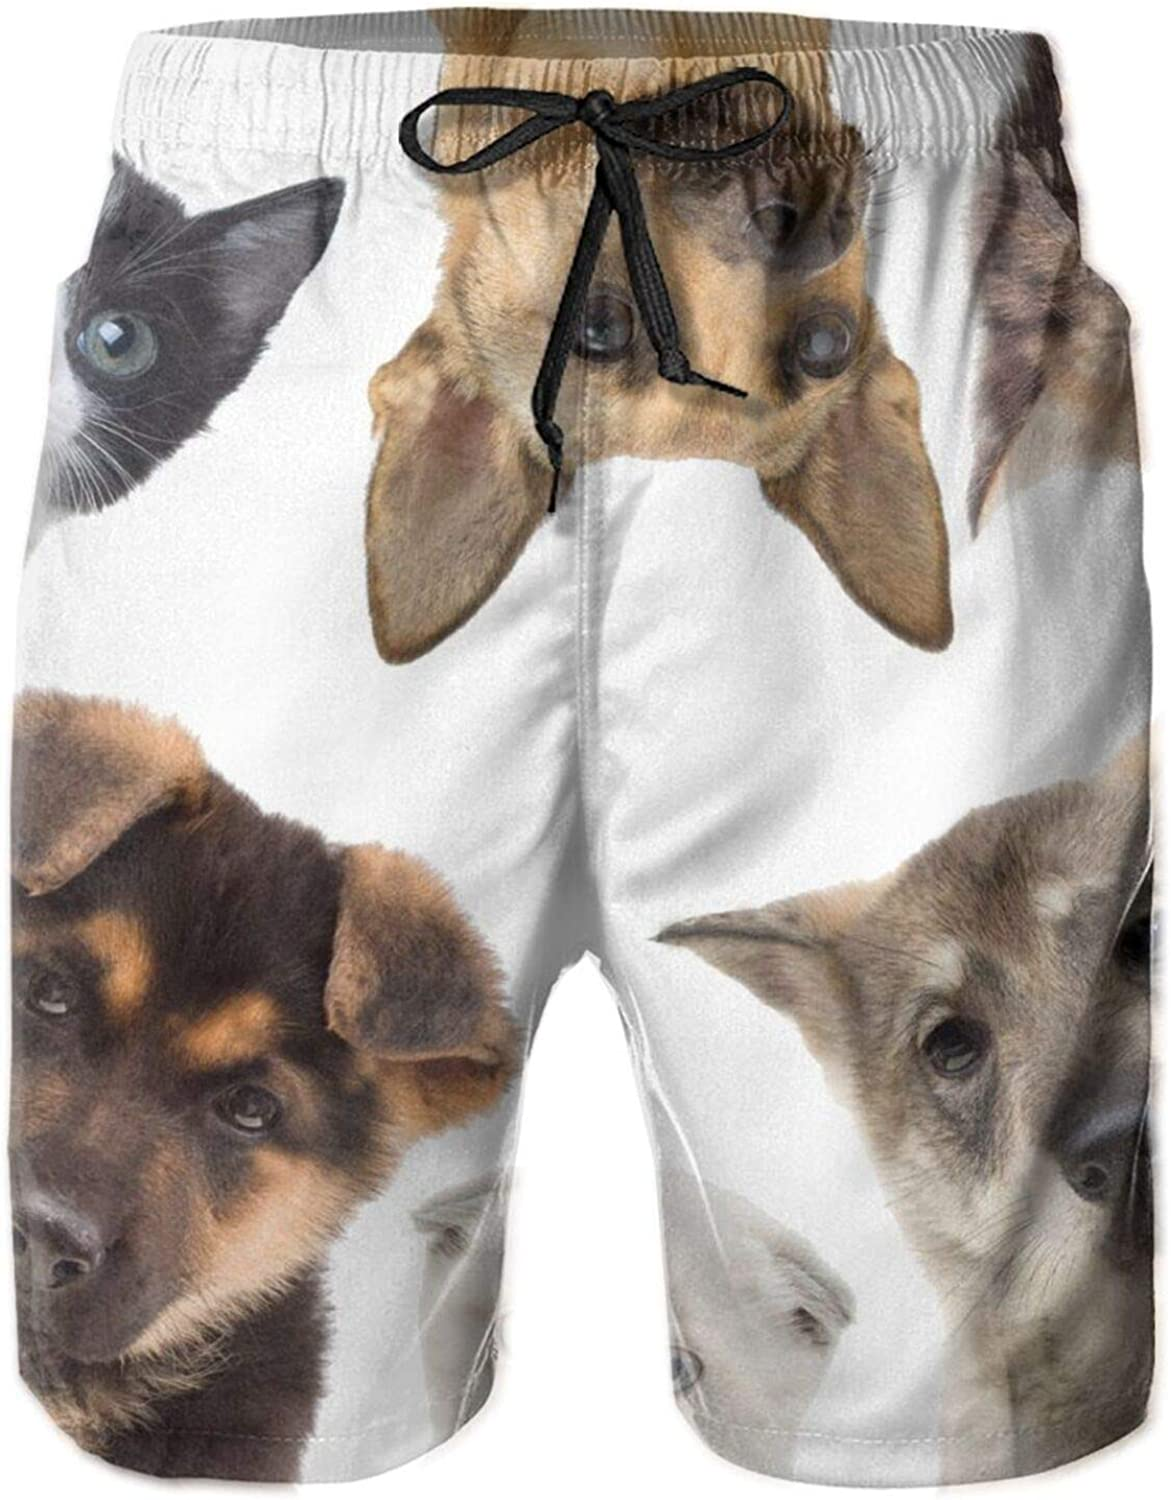 Yt92Pl@00 Large special price !! Men's 100% Polyester Pets Casual Sh Board Special price for a limited time Trunks Swim